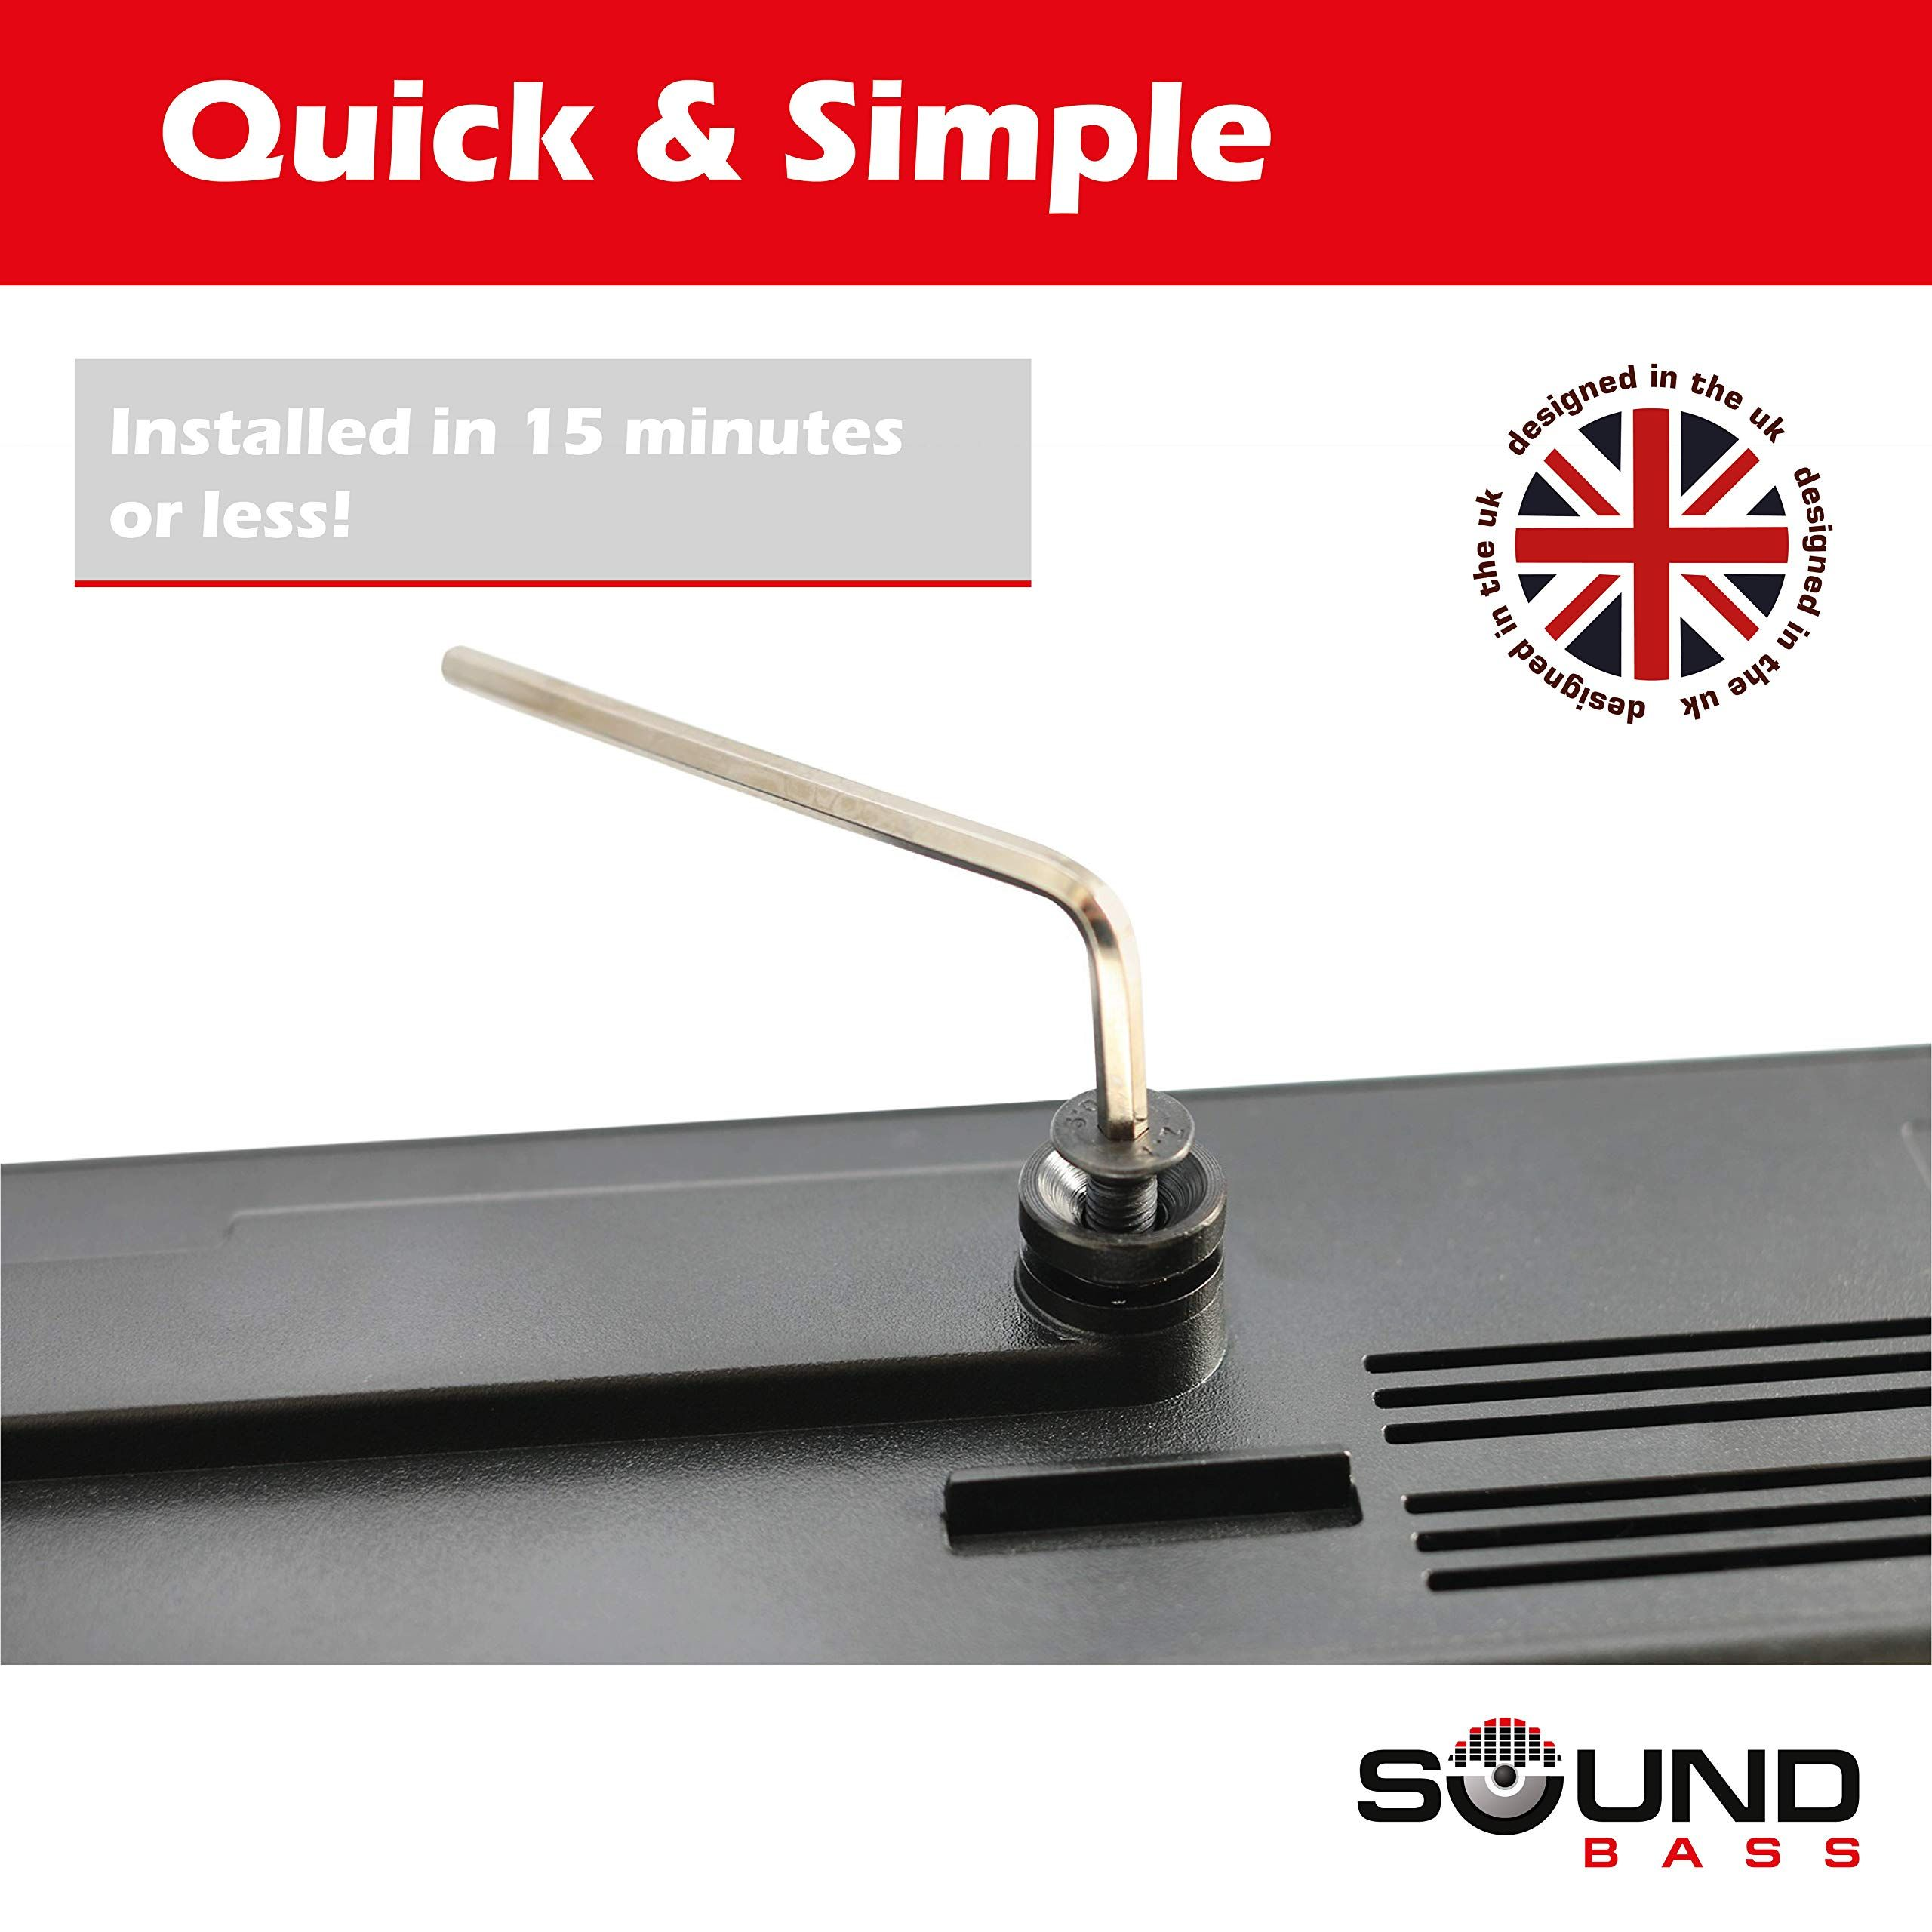 Solo 5 Wall Mount Kit For Bose Solo 5 Complete With All Mounting Hardware Designed In The Uk By Soundbass Kit Bose Mount Sol Design Mounting Wall Mount